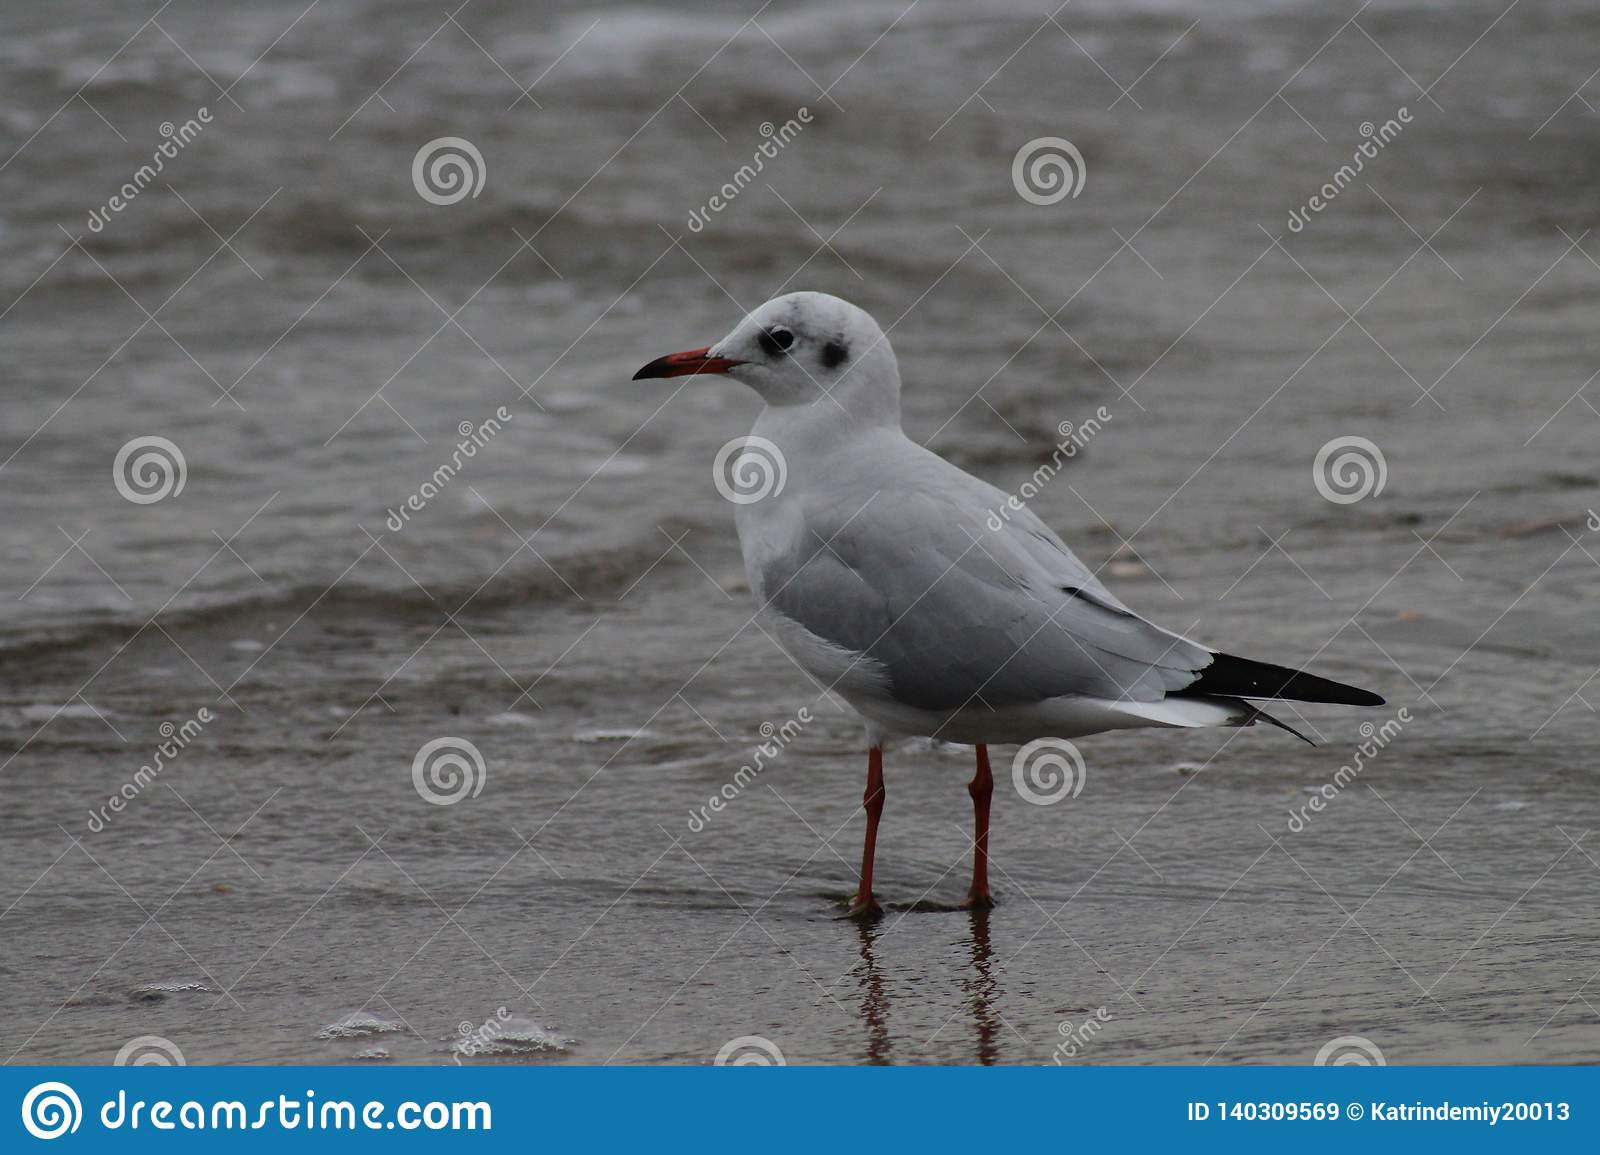 Seagull Black sea. Blaсk heights dissected fussy gulls.